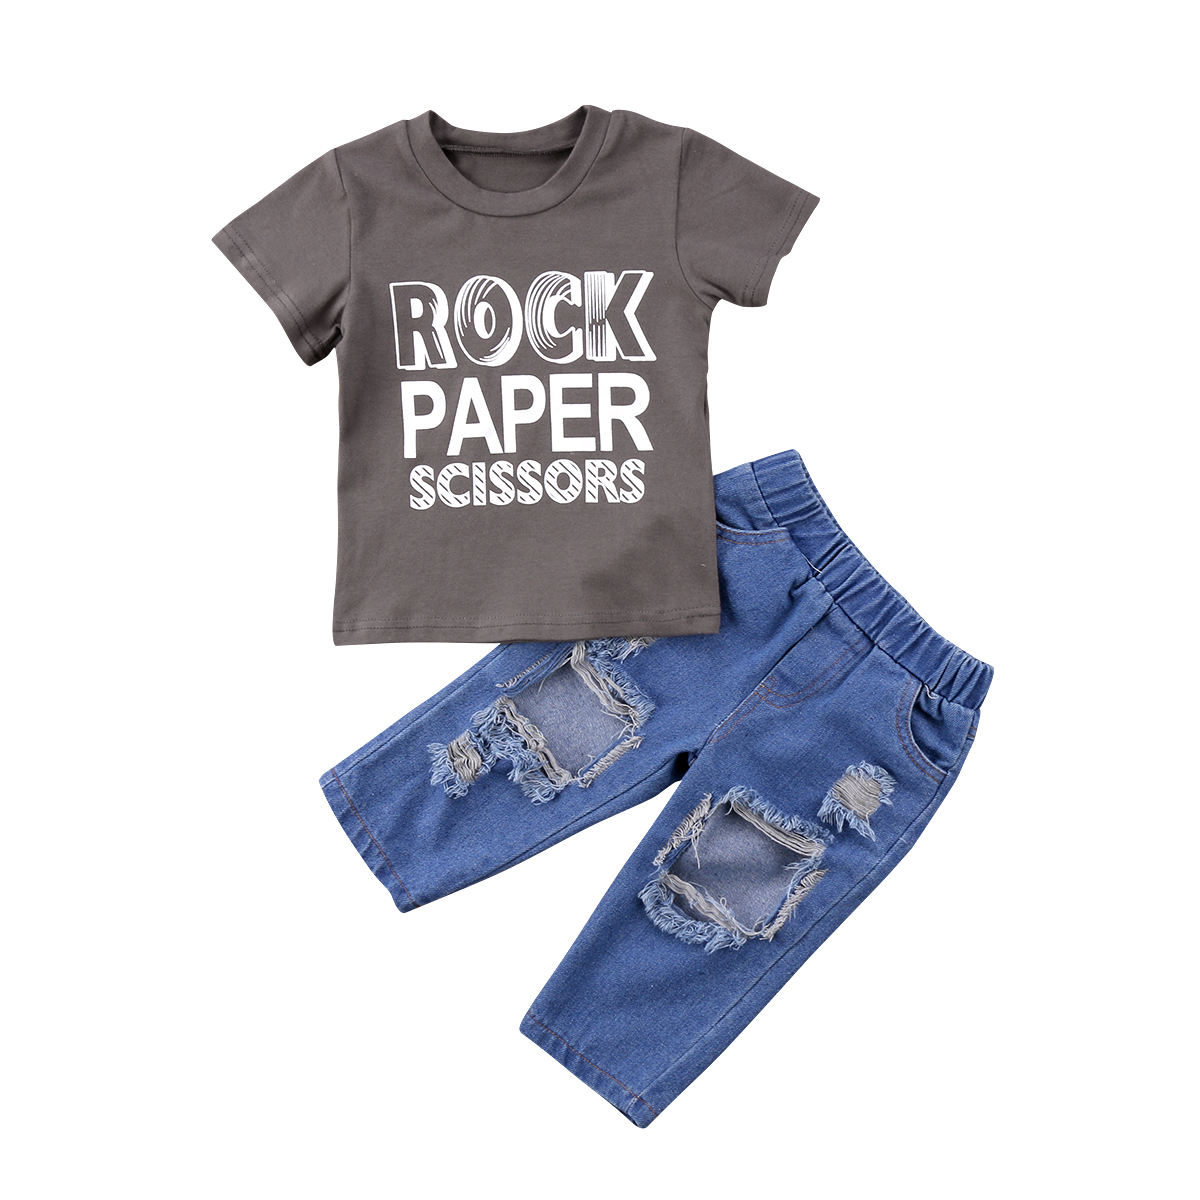 2018 Toddler Kids Baby Boy Clothes Short Sleeves Gray Paper T Shirt Mom N Bab Long Pants Blue Polkadot Size 4t Tops Denim Leggings Hollow Jeans Outfits Fashion Set In Clothing Sets From Mother